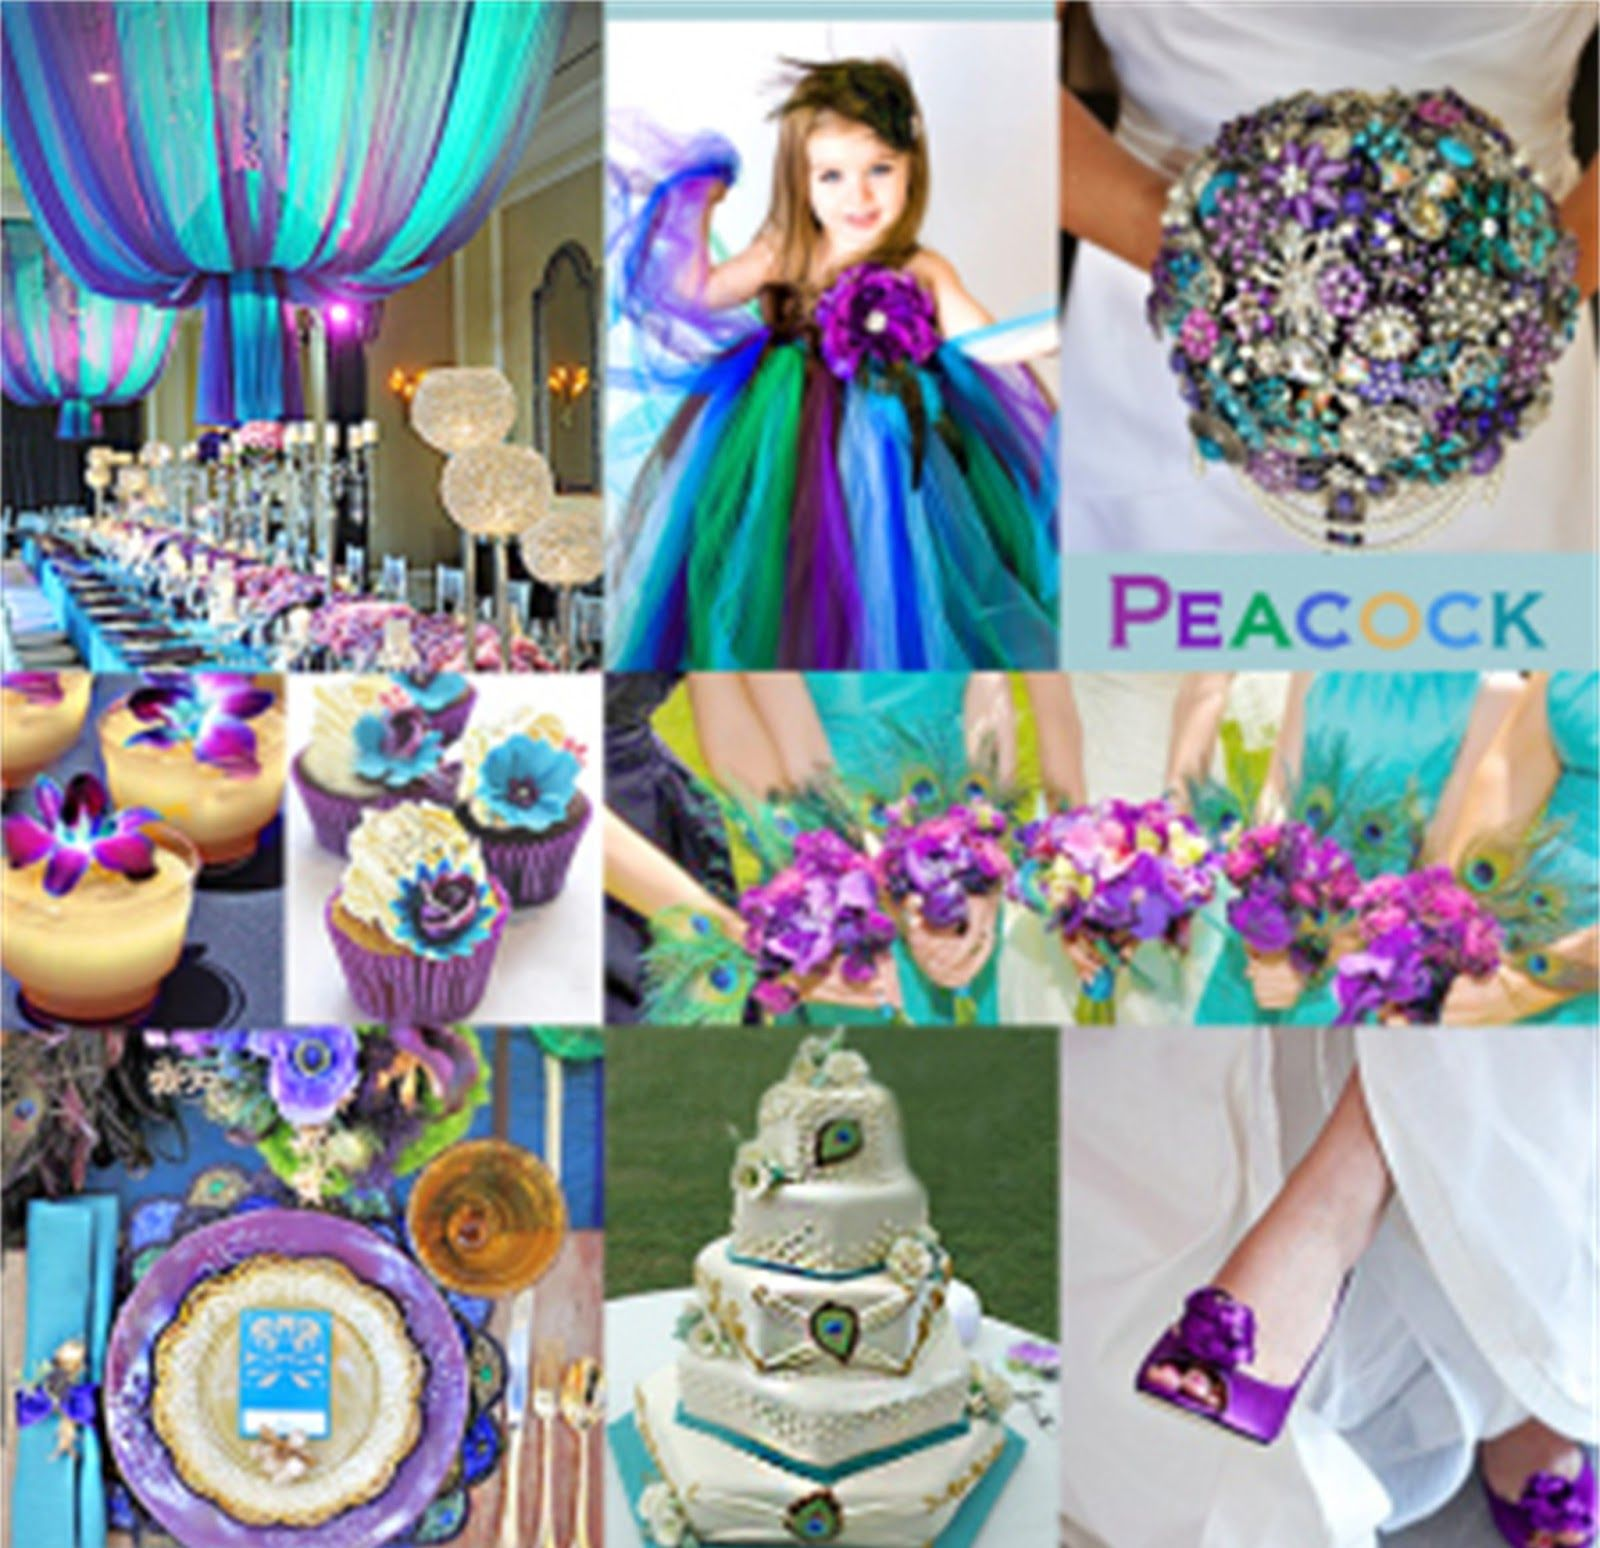 Angee S Eventions Peacock Themed Wedding Wedding Colors Purple Peacock Wedding Theme Wedding Color Combinations